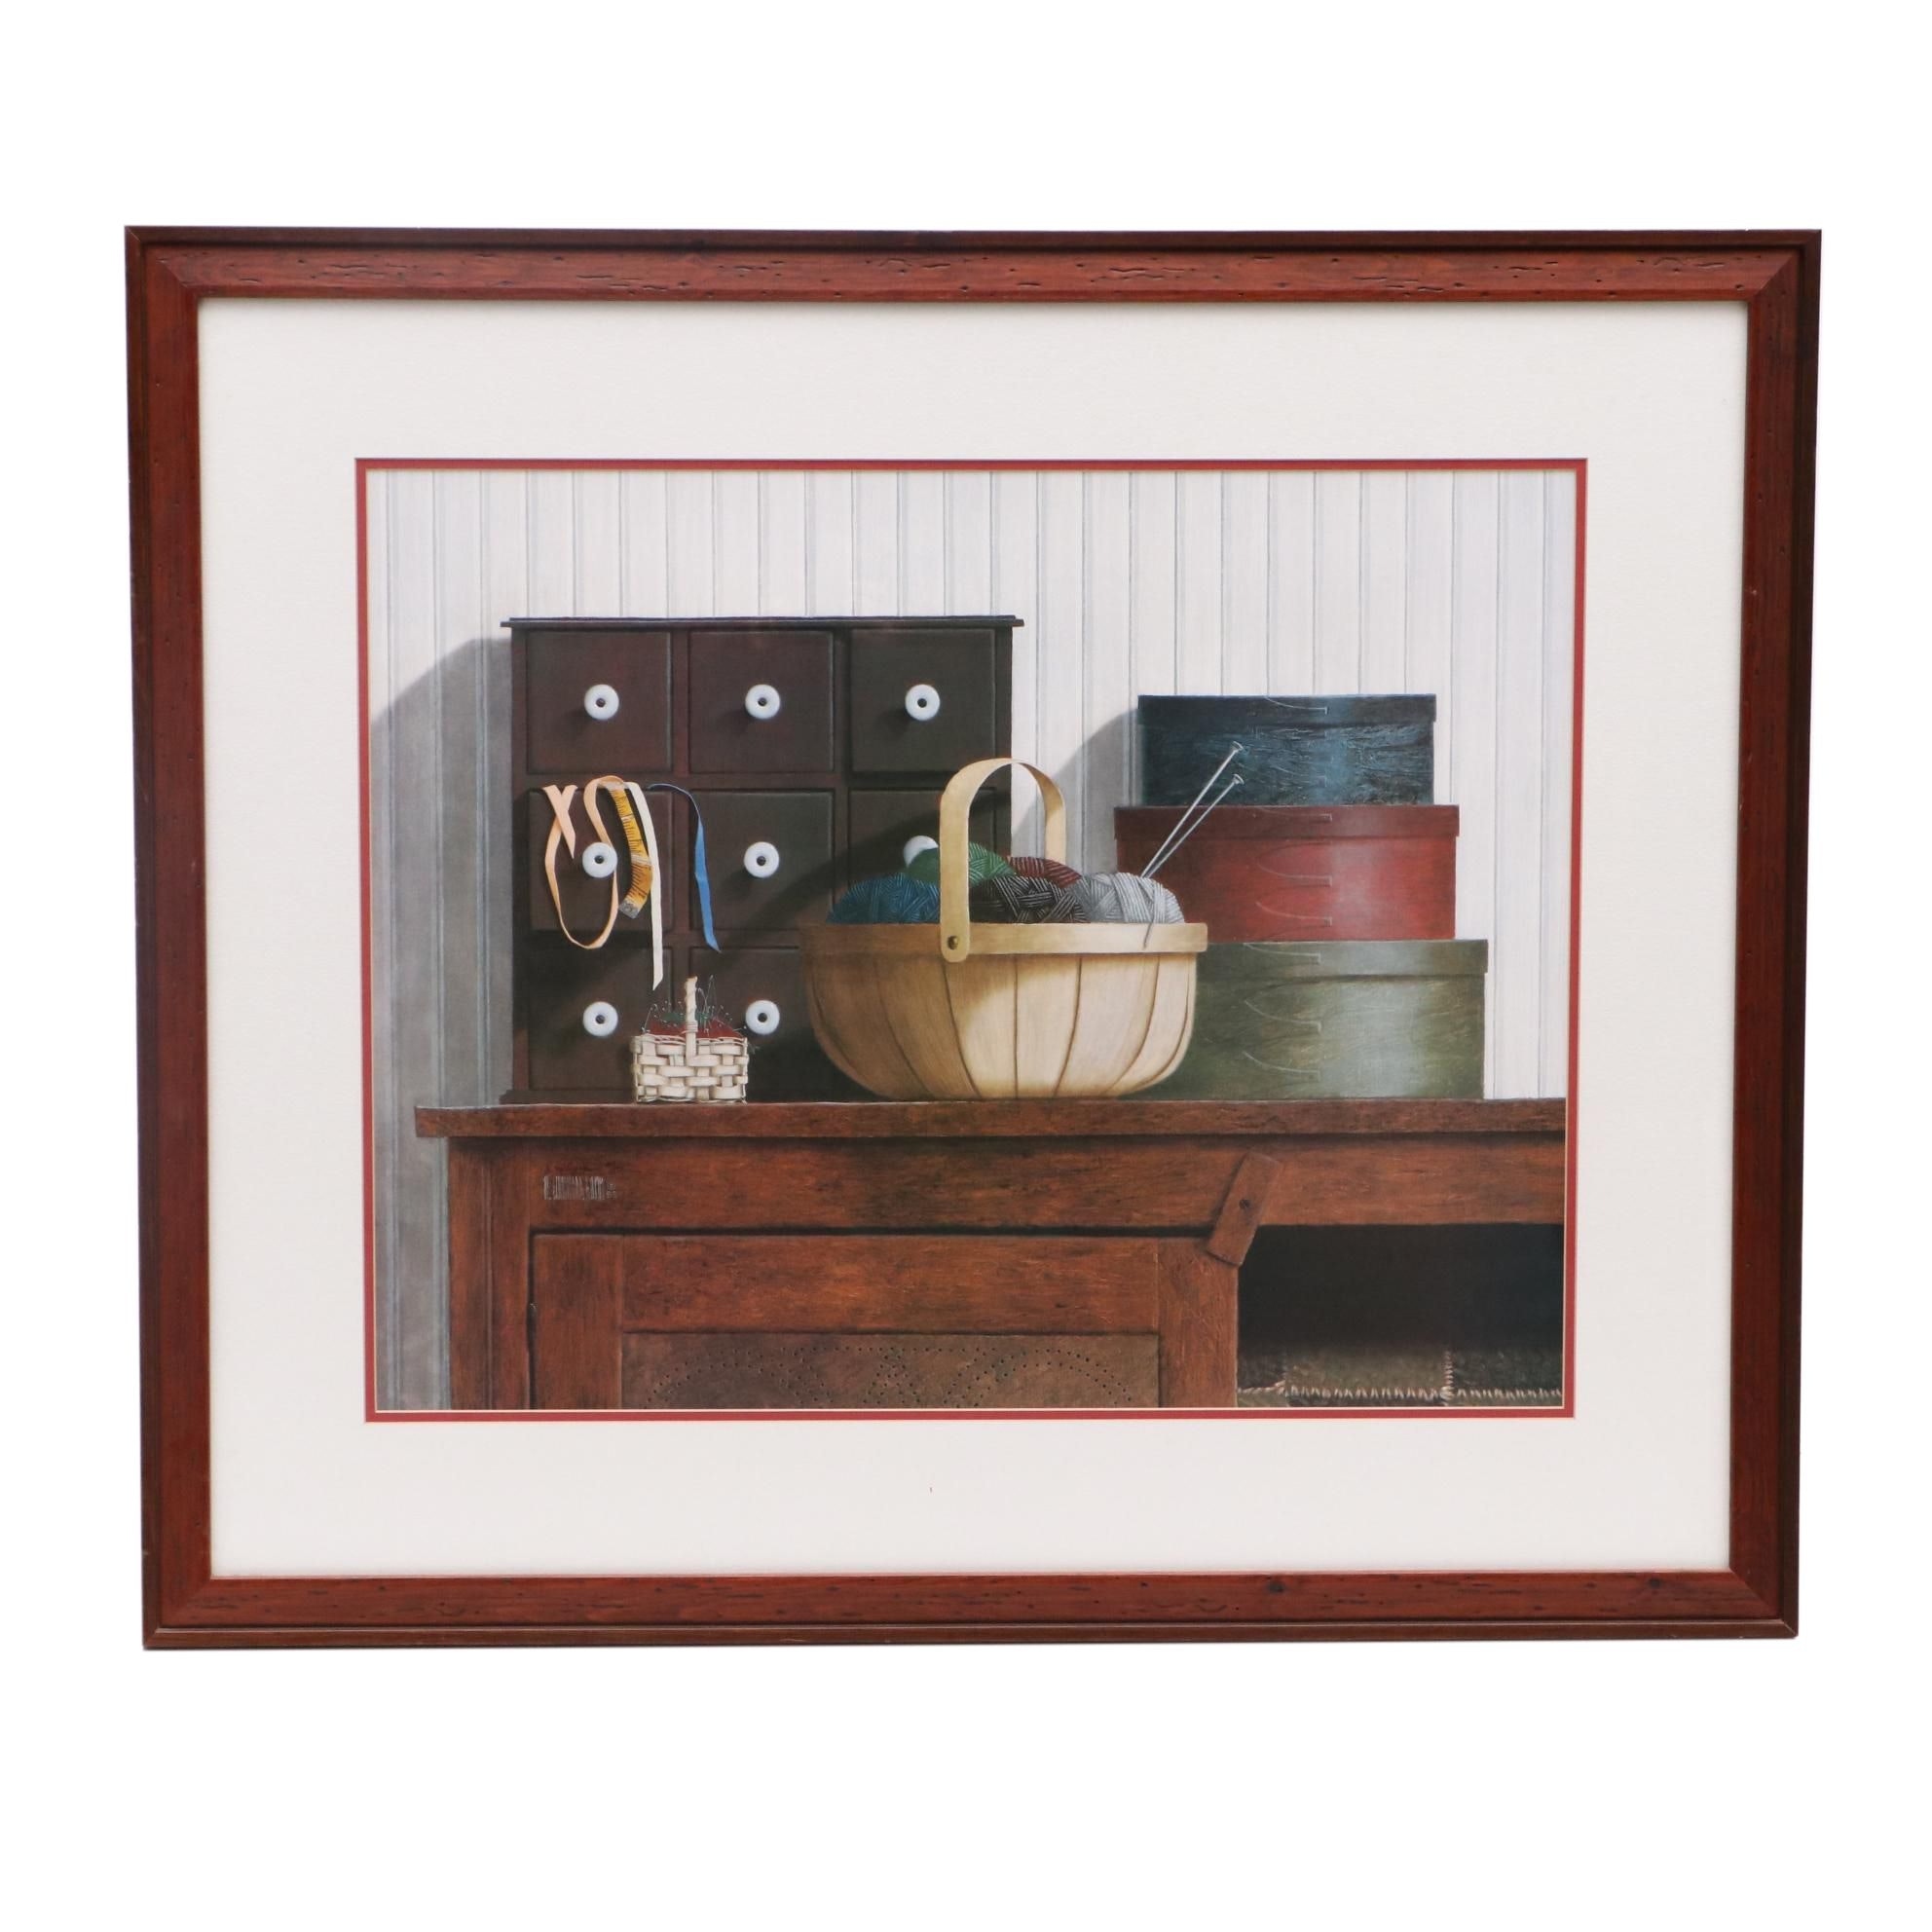 Ron Wickersham Limited Edition Offset Lithograph of Interior Tableau